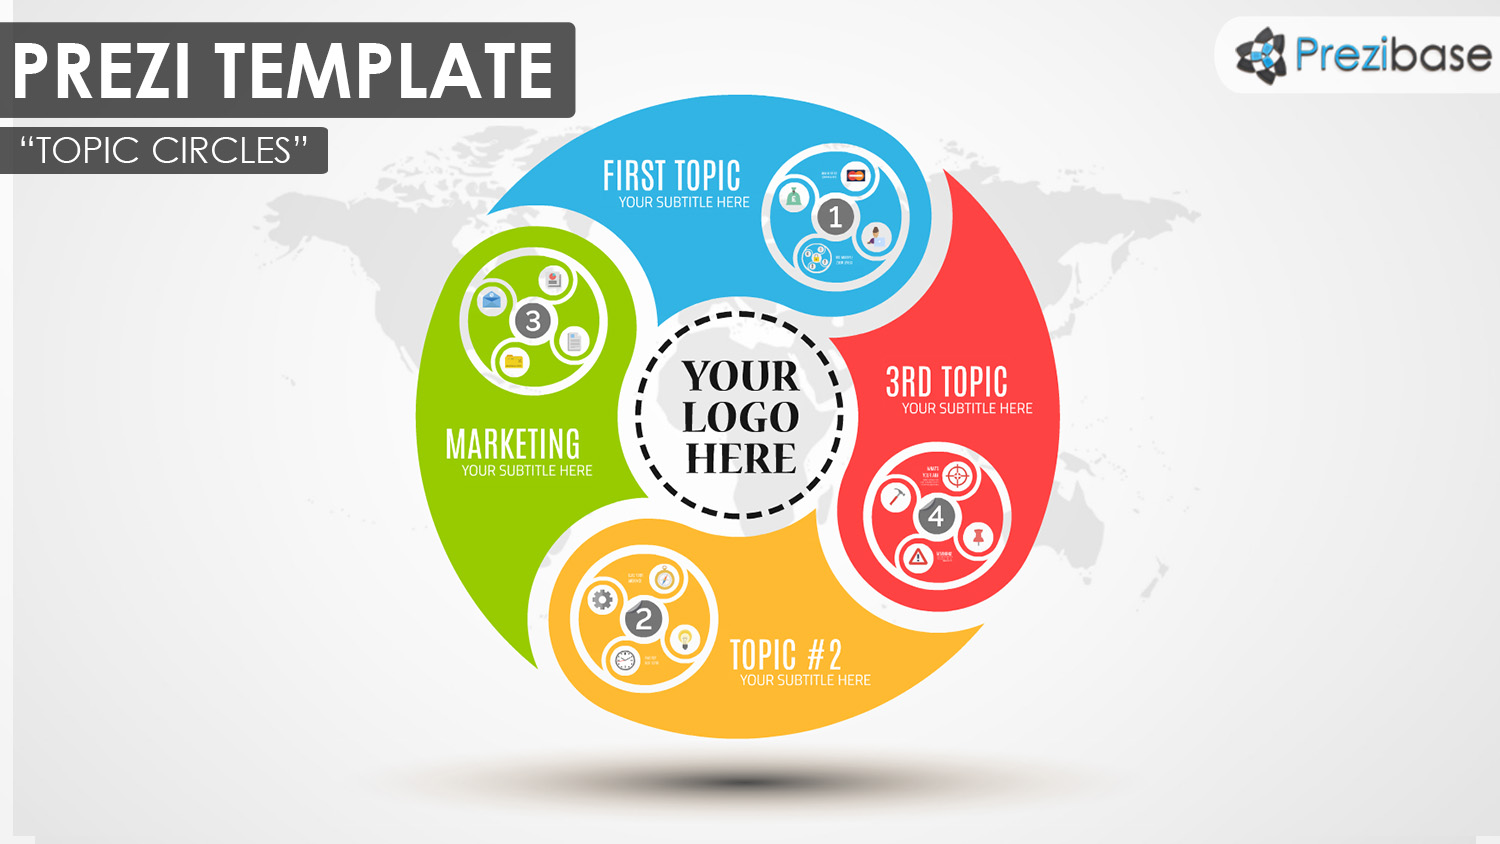 prezi template library - topic circles prezi presentation template creatoz